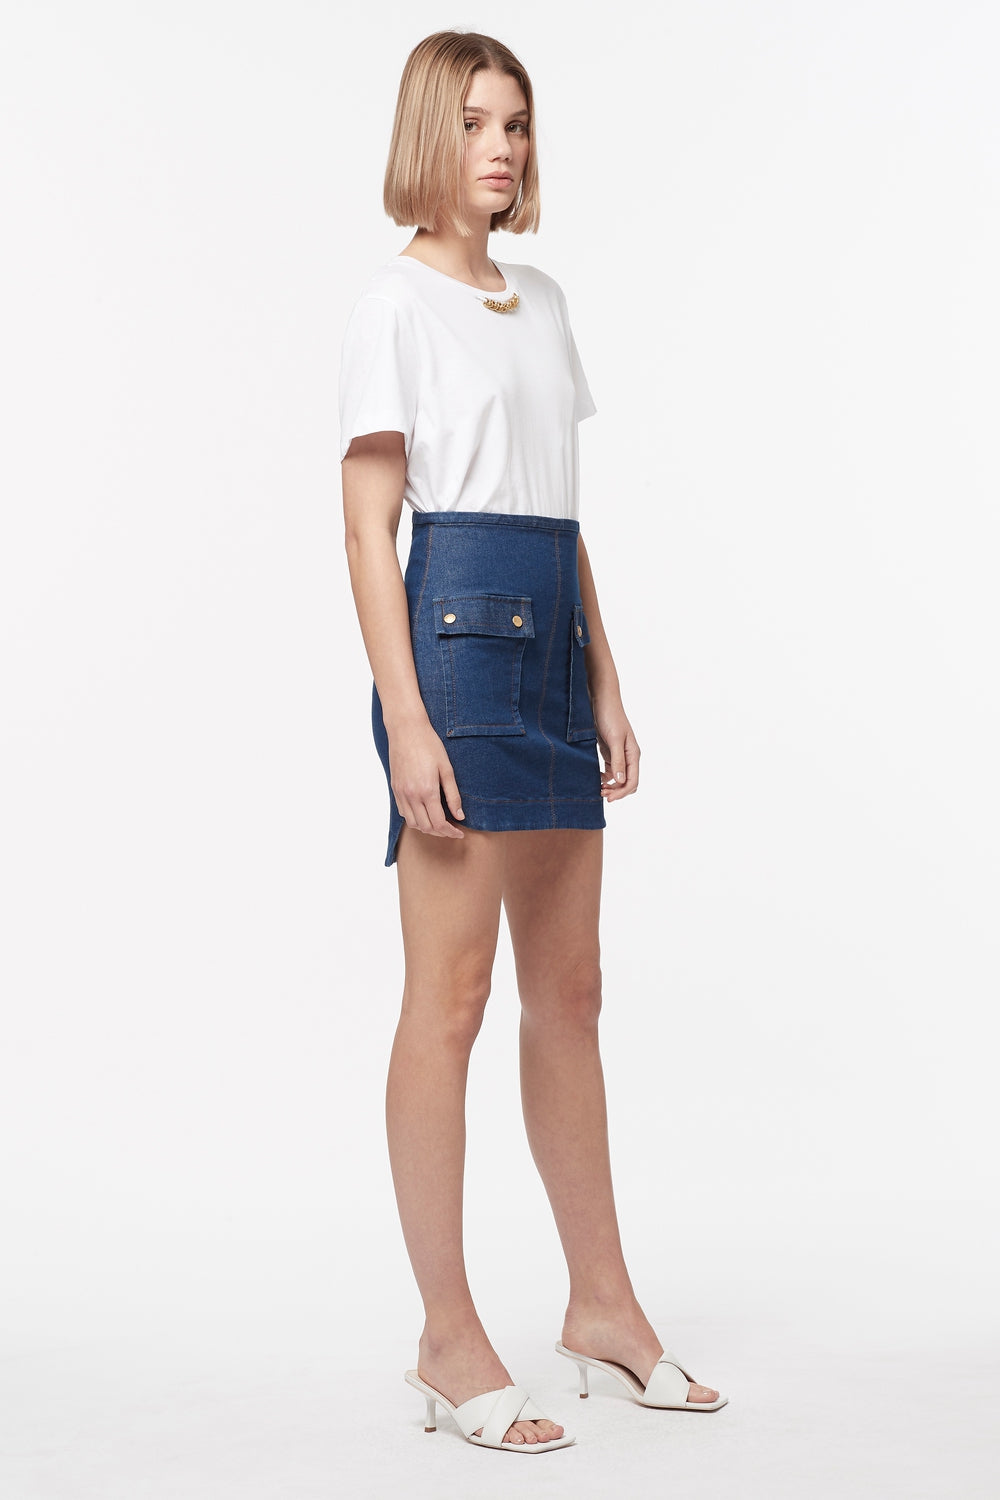 FADED GLORY DENIM MINI SKIRT